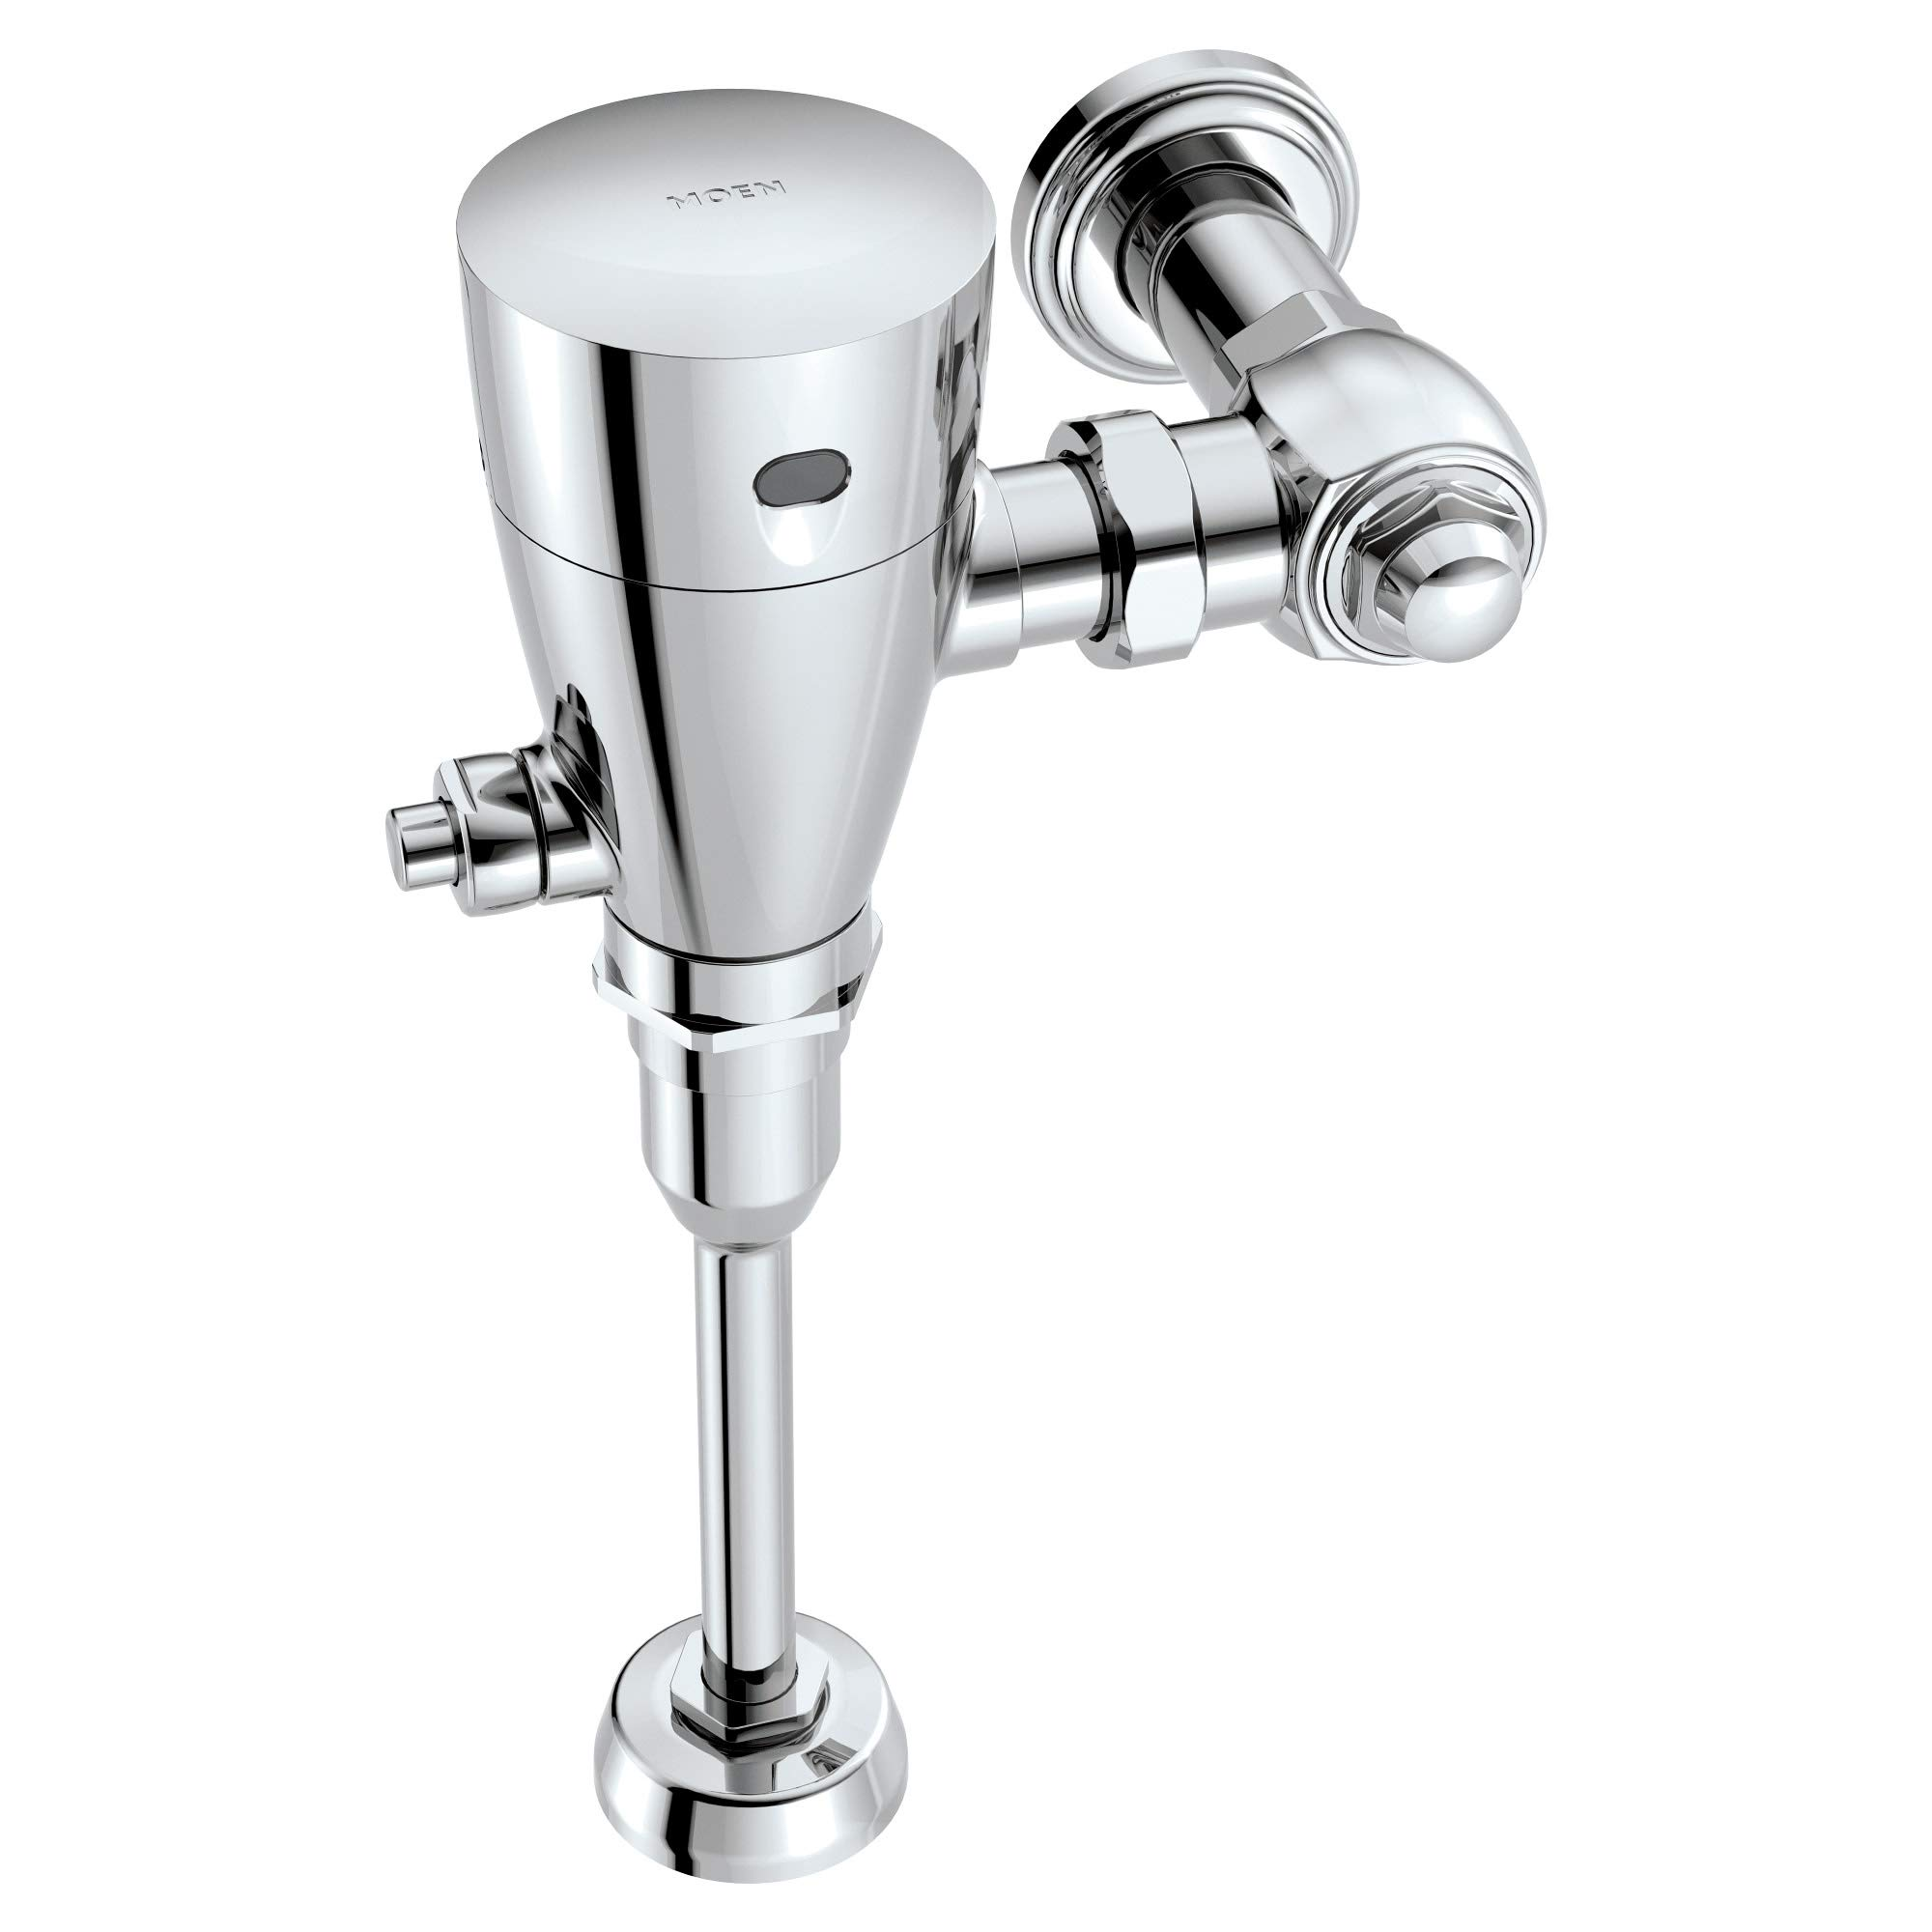 Moen 8315 M-Power 3/4-Inch Urinal Battery Powered Exposed Sensor-Operated Electronic Flush Valve .5 gpf, Chrome